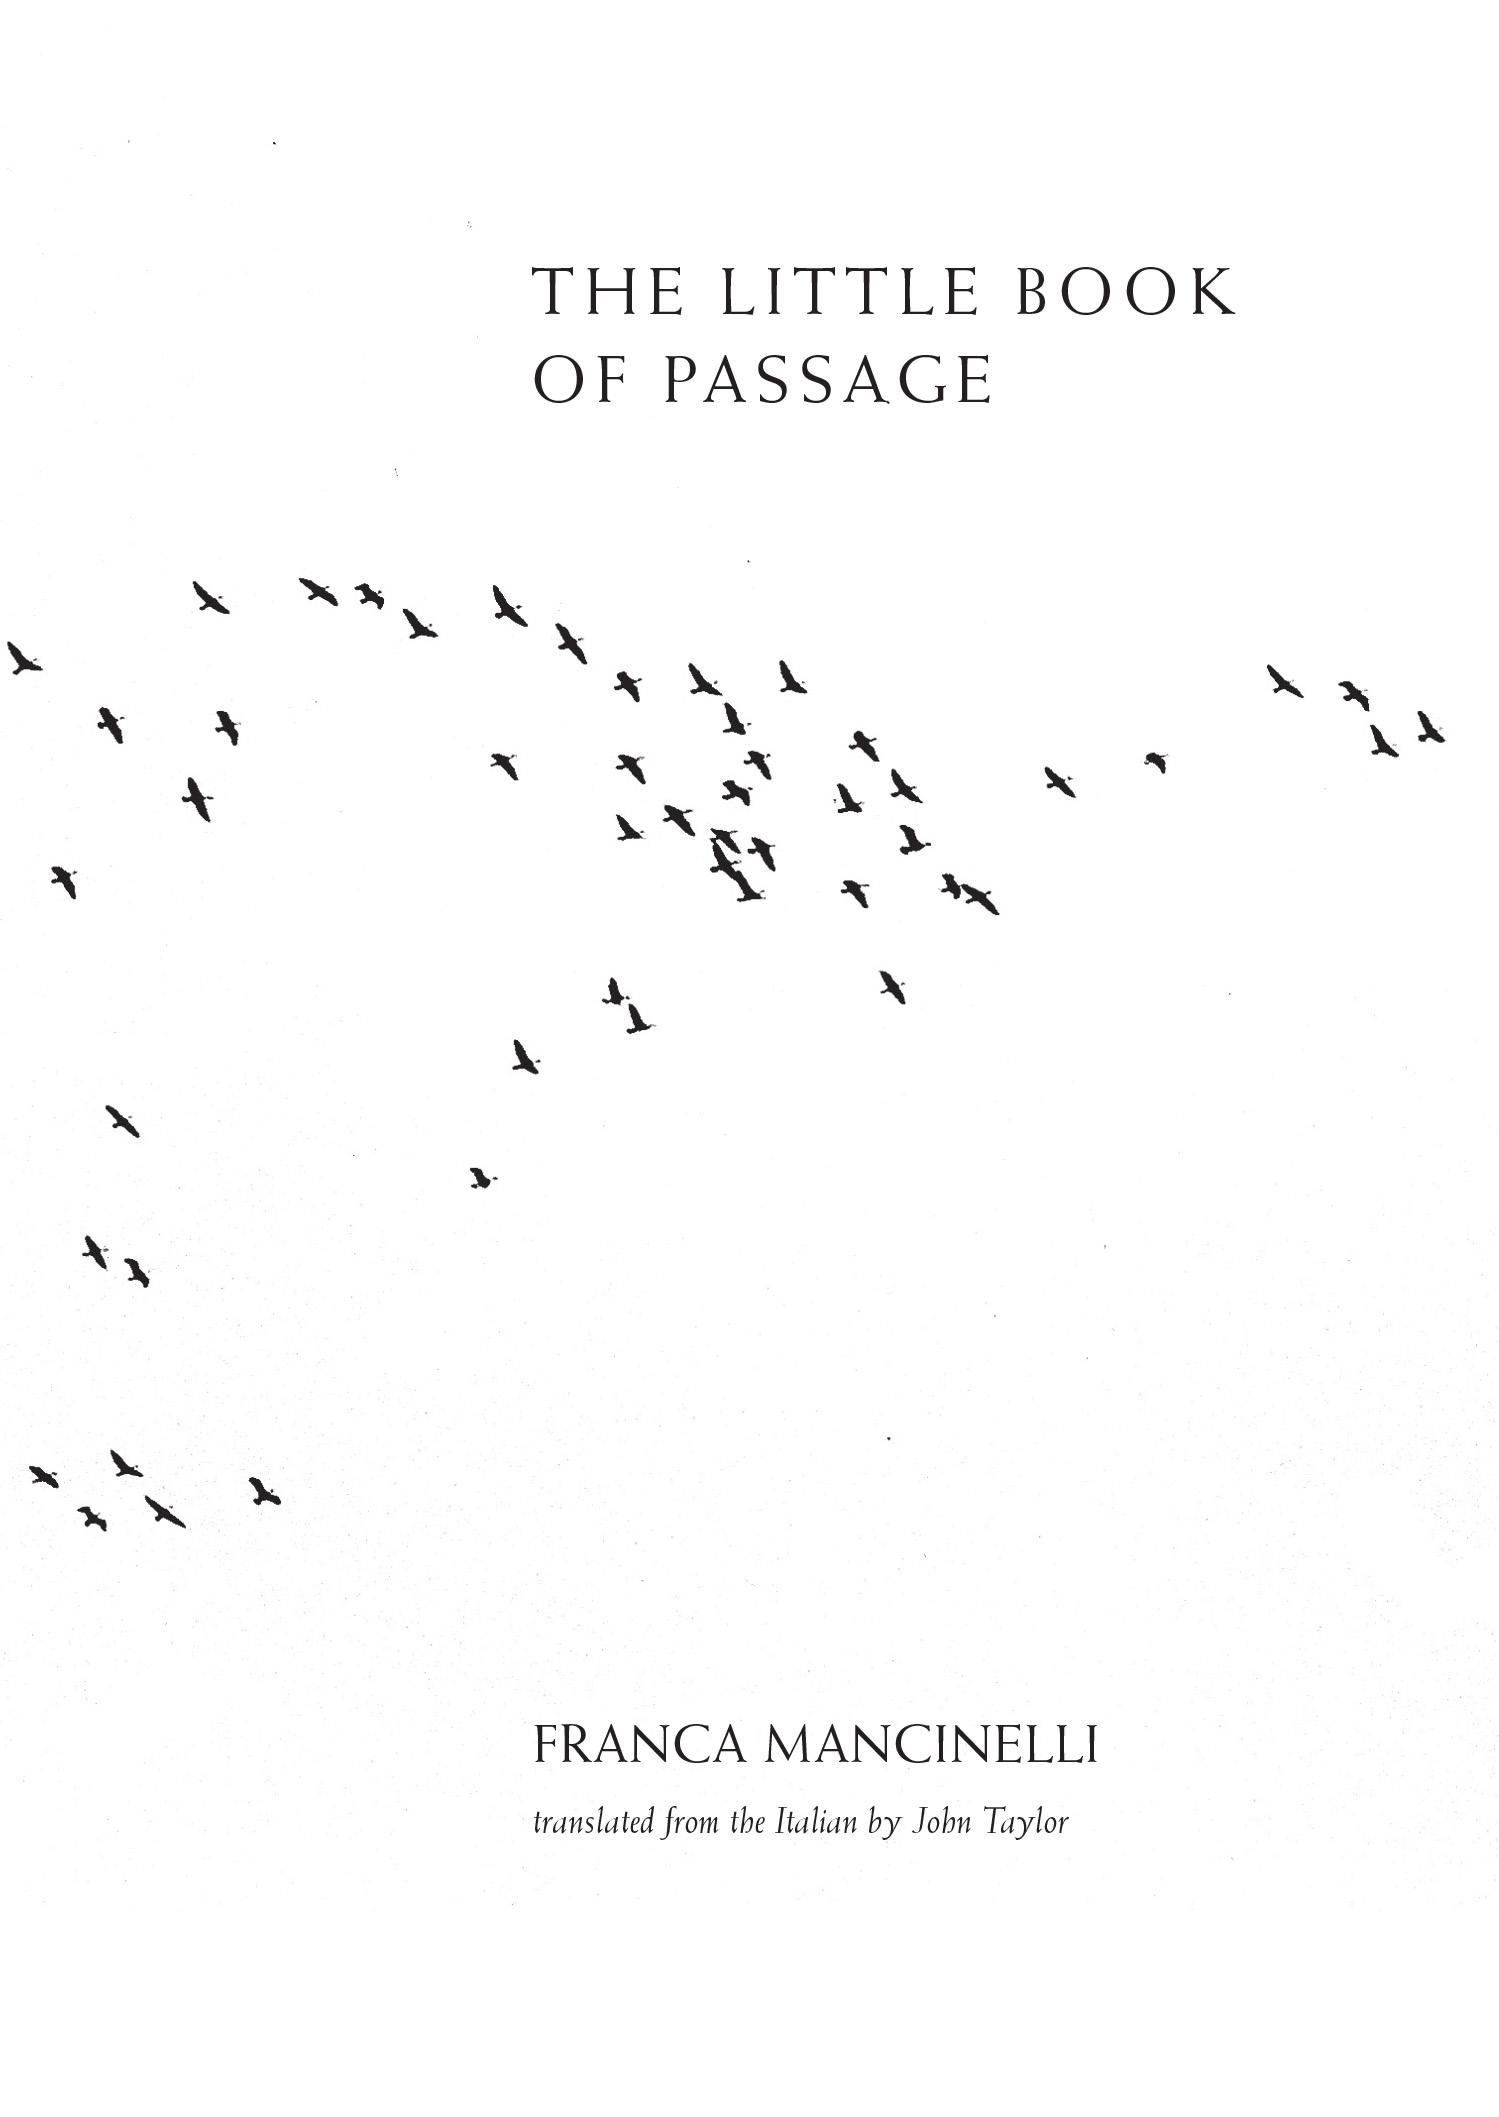 The Little Book of Passage